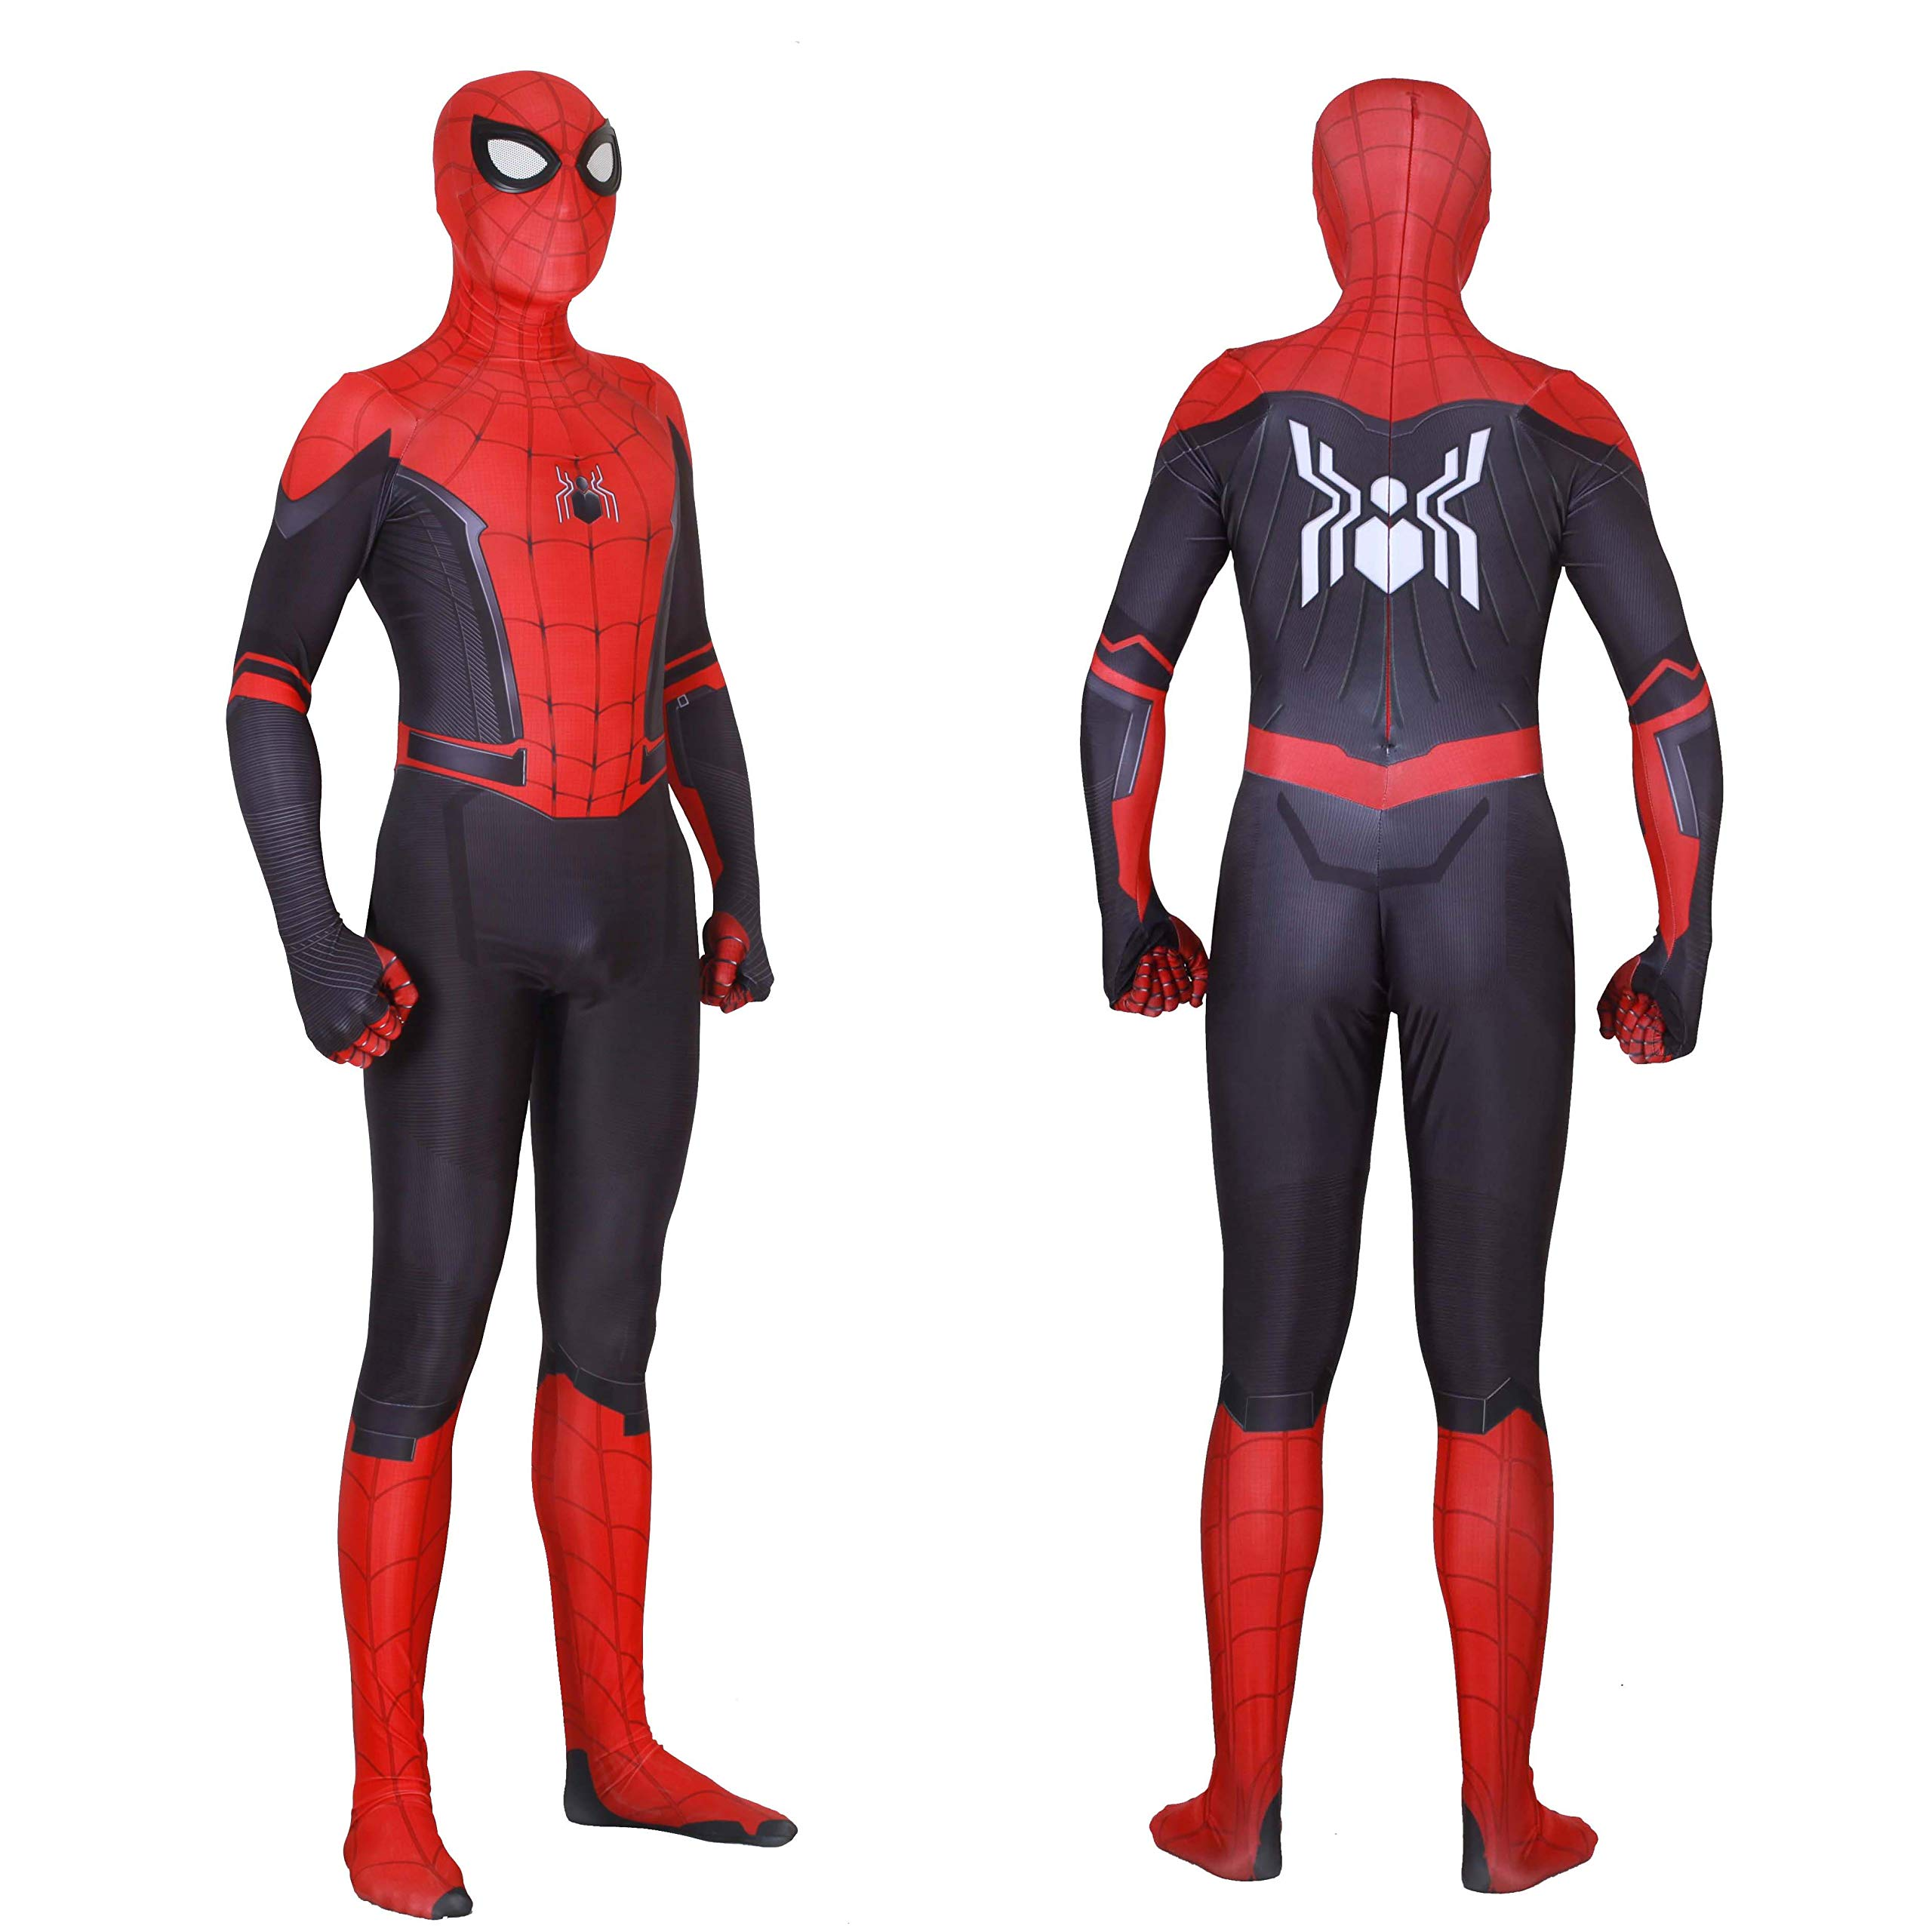 MYanimec Unisex Lycra Spandex Zentai Halloween Cosplay Costumes Adult/Kids 3D Style (Adults-L Red and Black